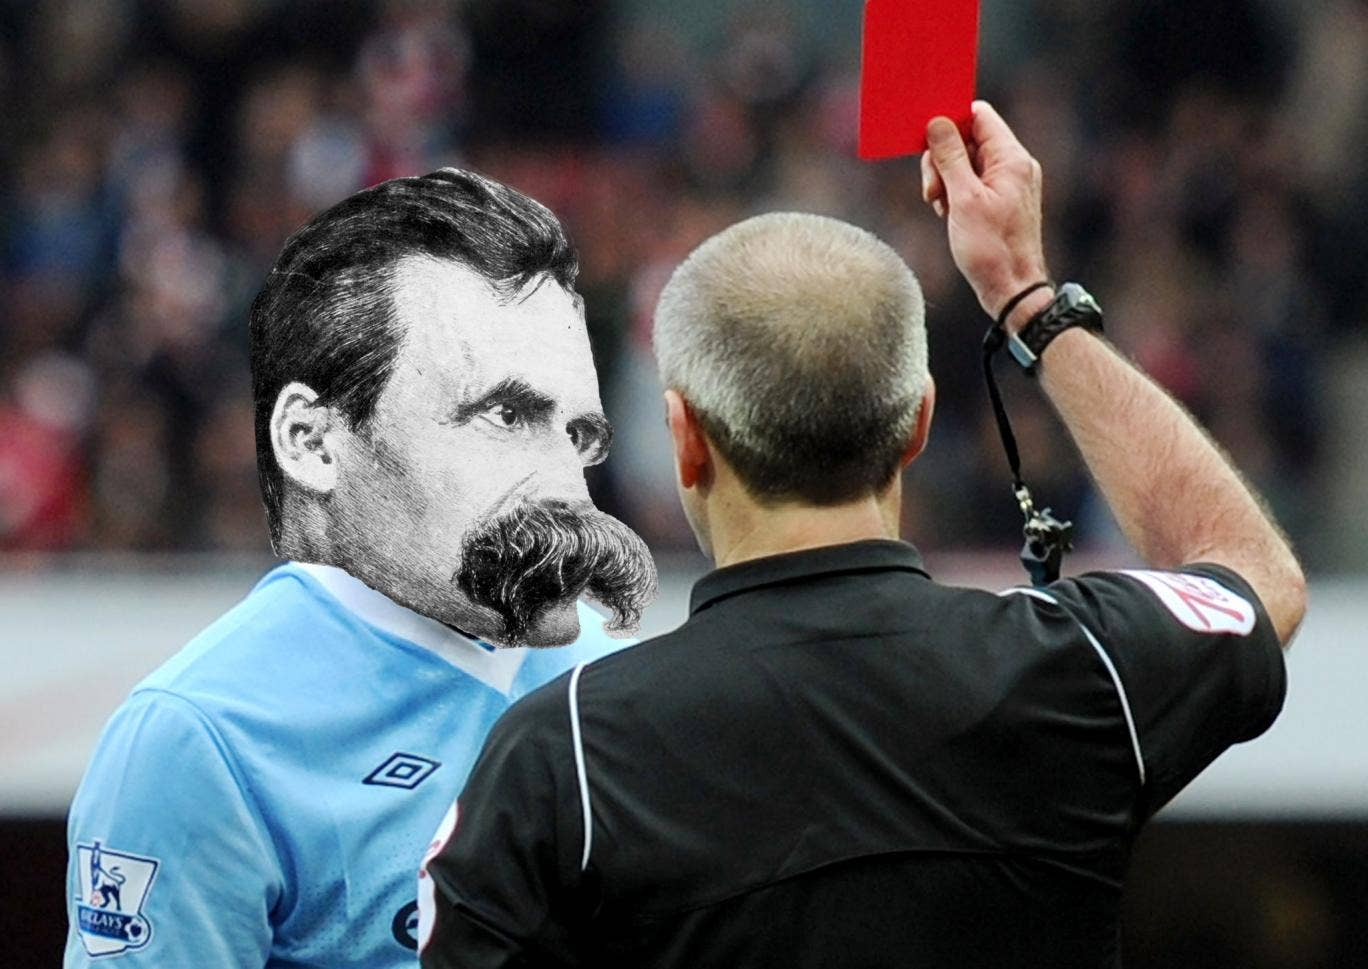 Nietzsche gets sent off the field by a football referee